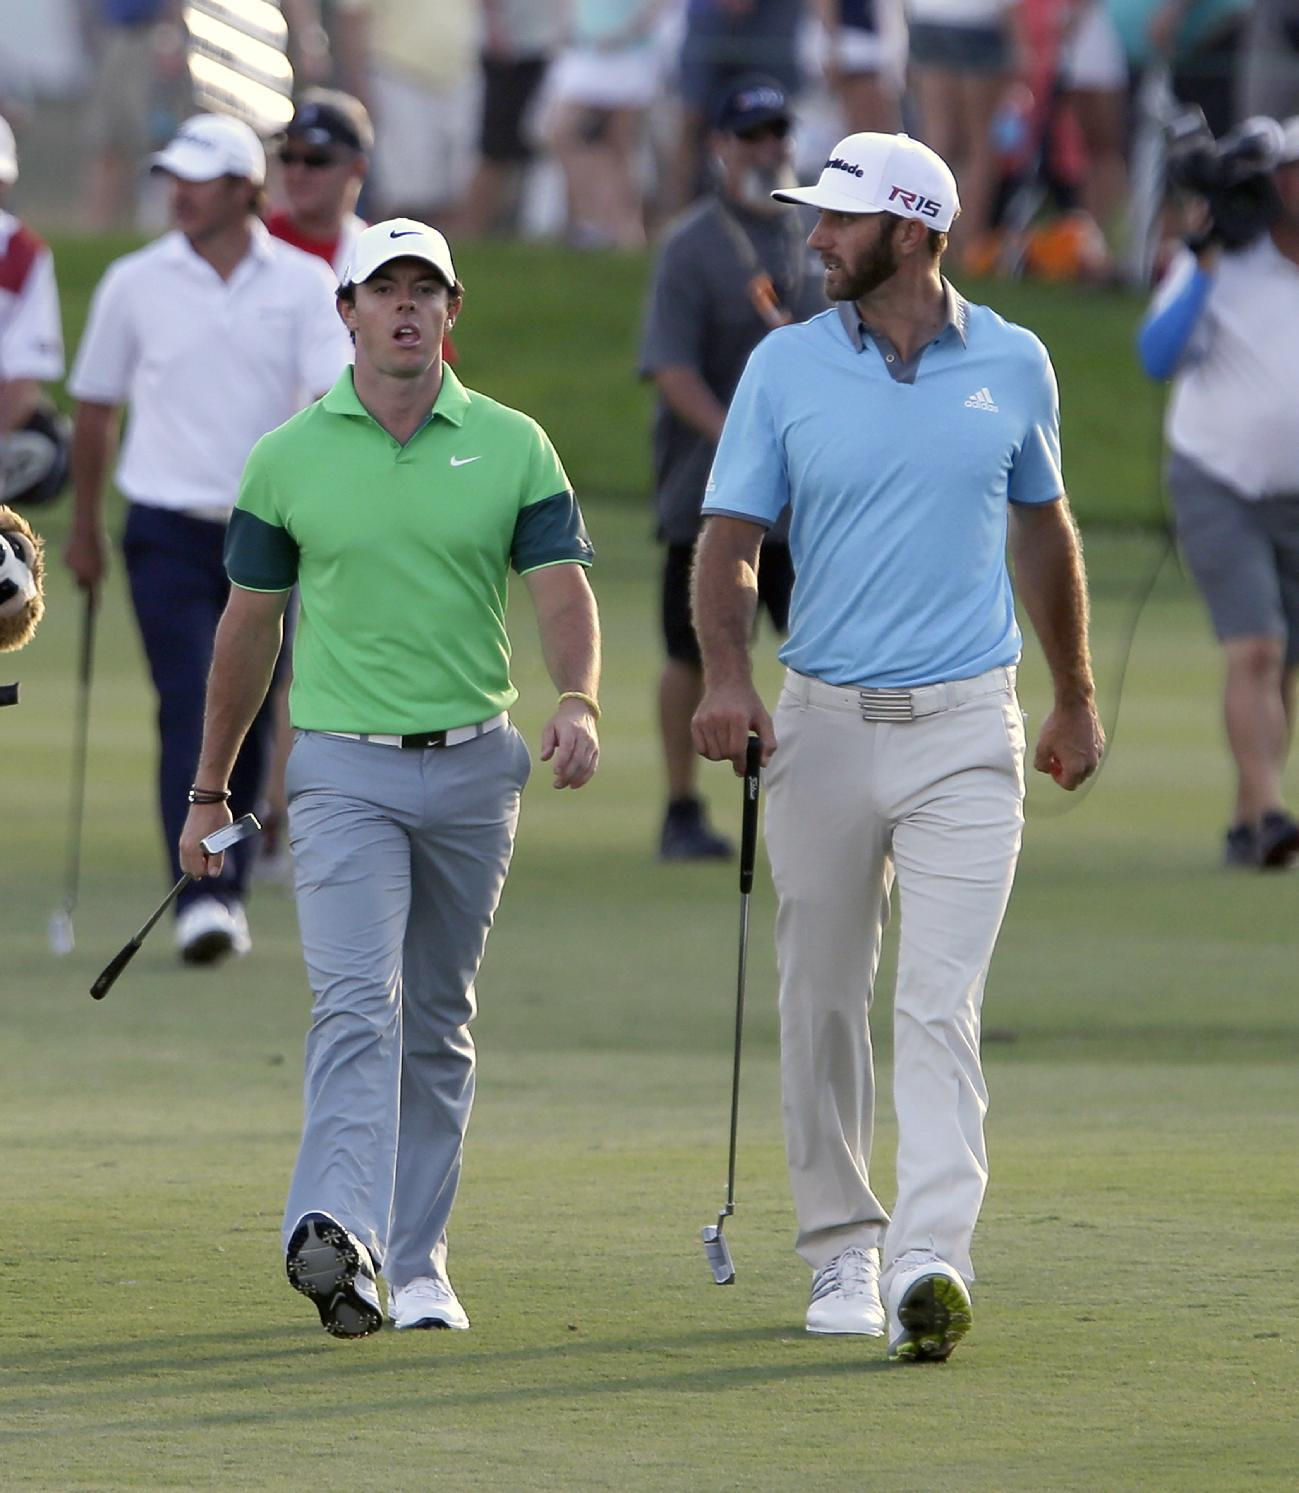 McIlroy gets off to a wind-blown start at Honda